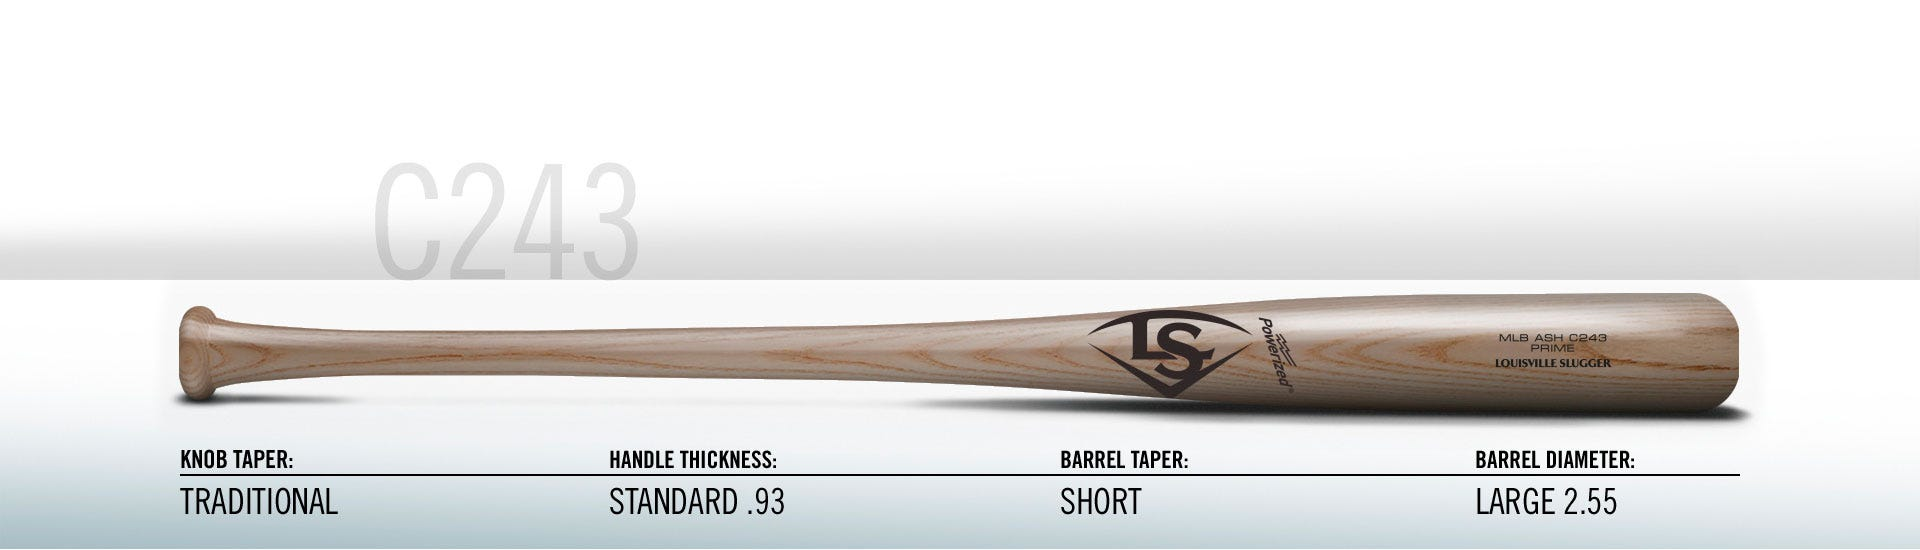 ee389f12a36 Max taper  an aggressive flare to the handle as it joins the knob for a  wider feel in your bottom hand.